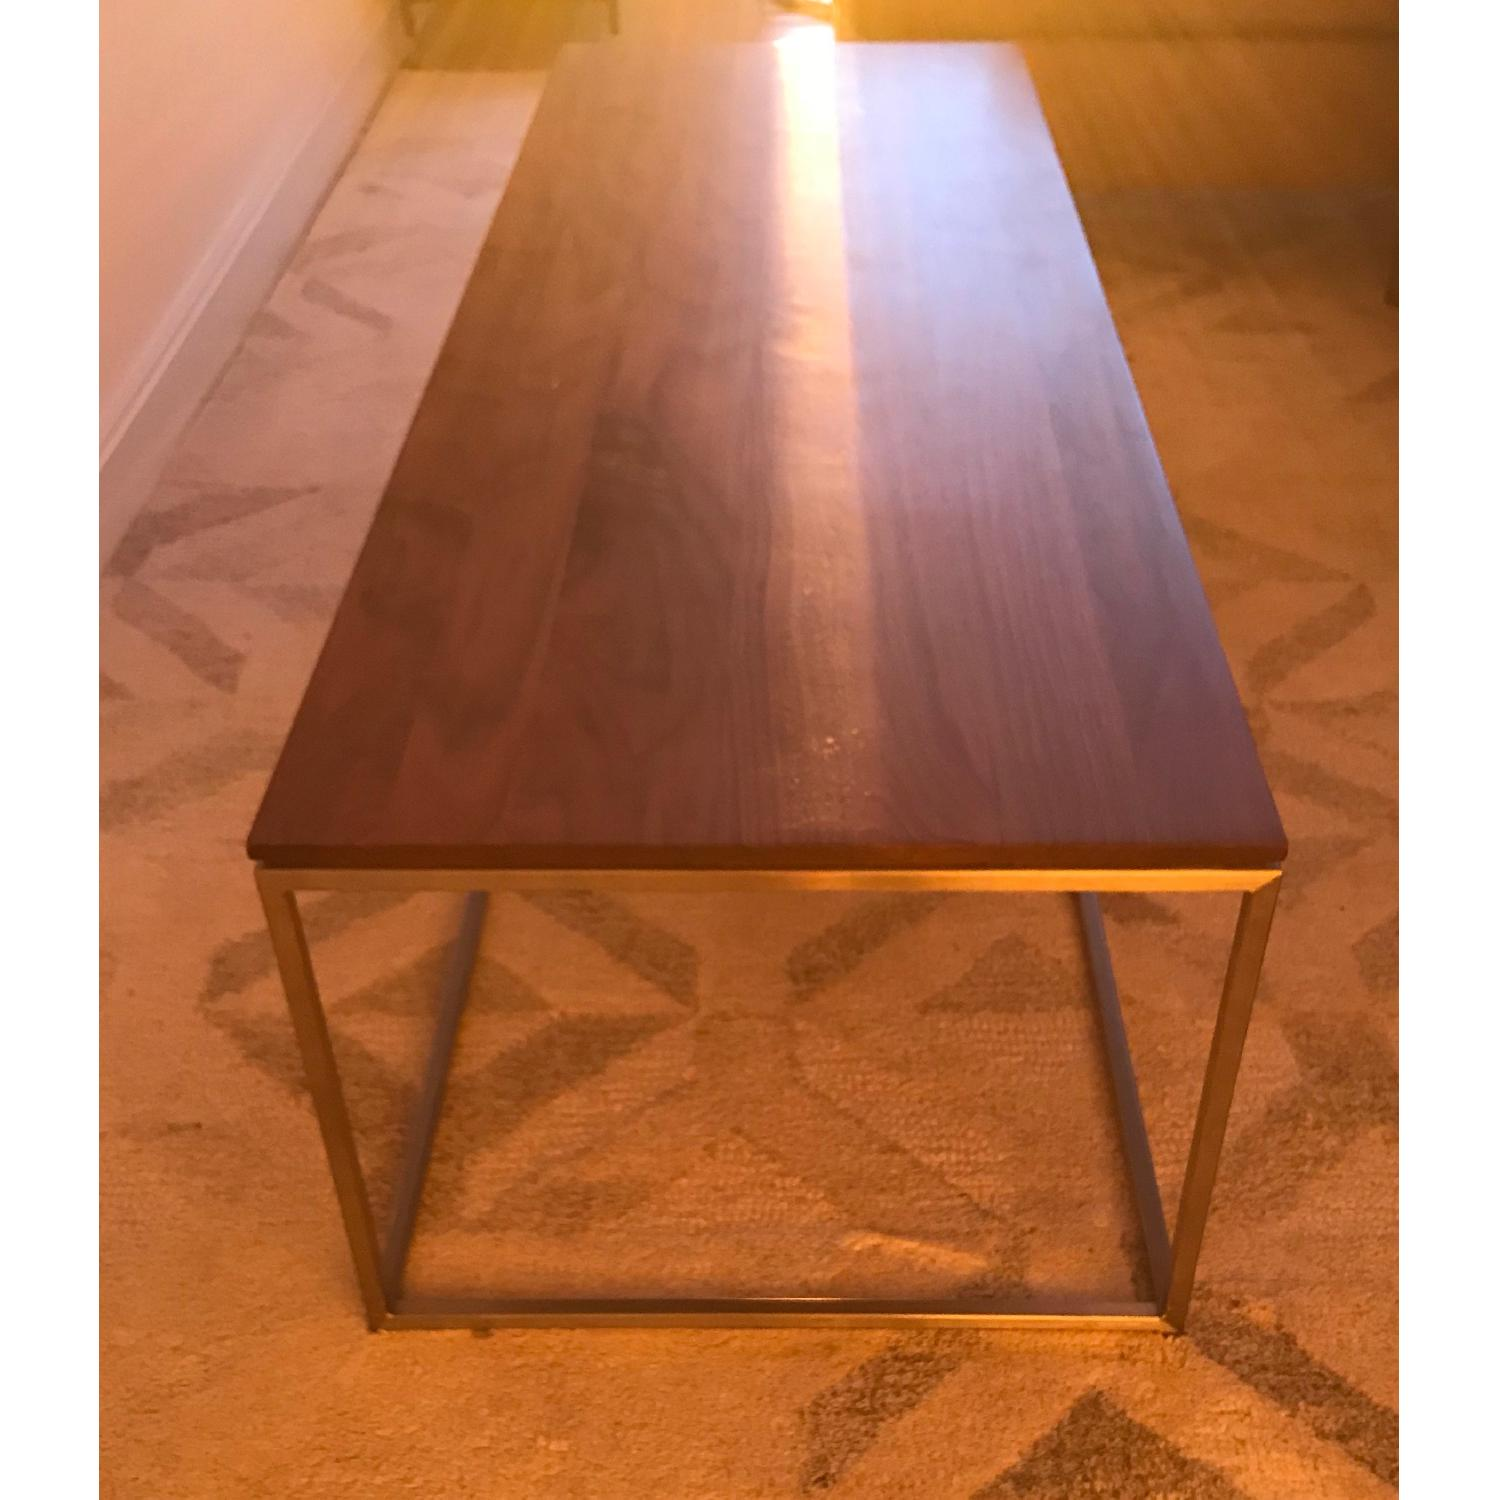 Crate & Barrel Frame Coffee Table-2